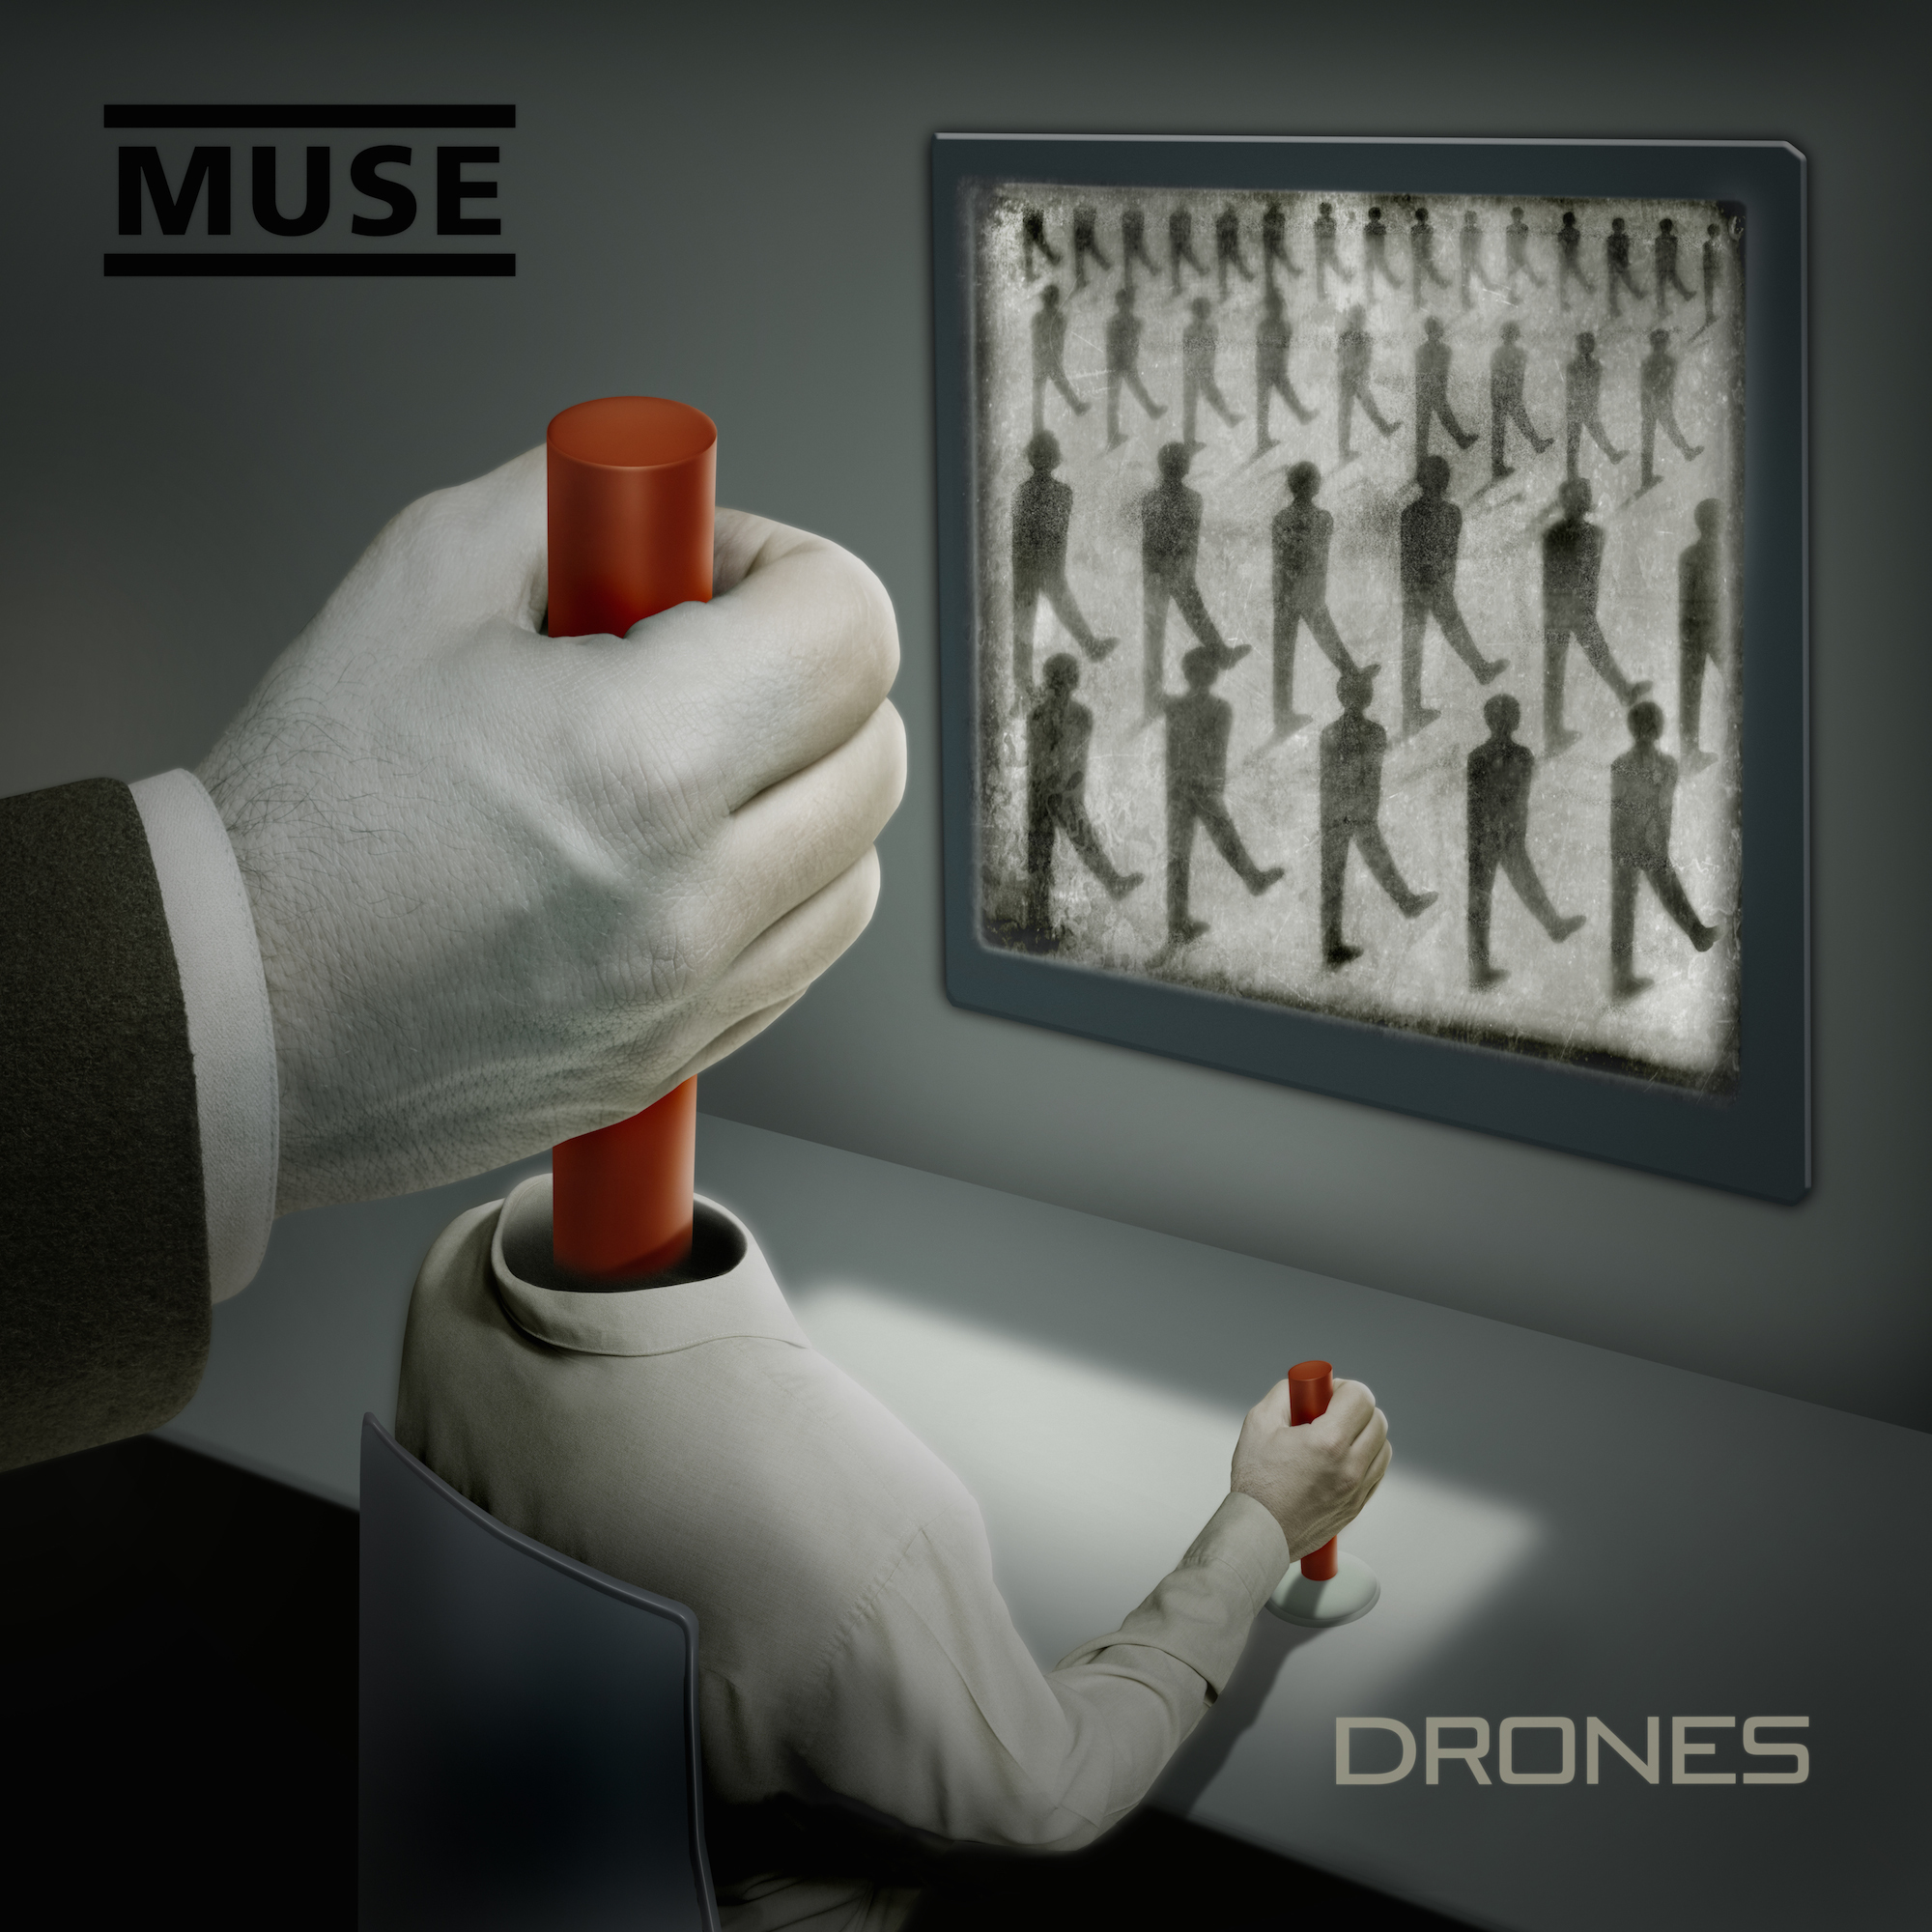 CD review: Muse - Drones